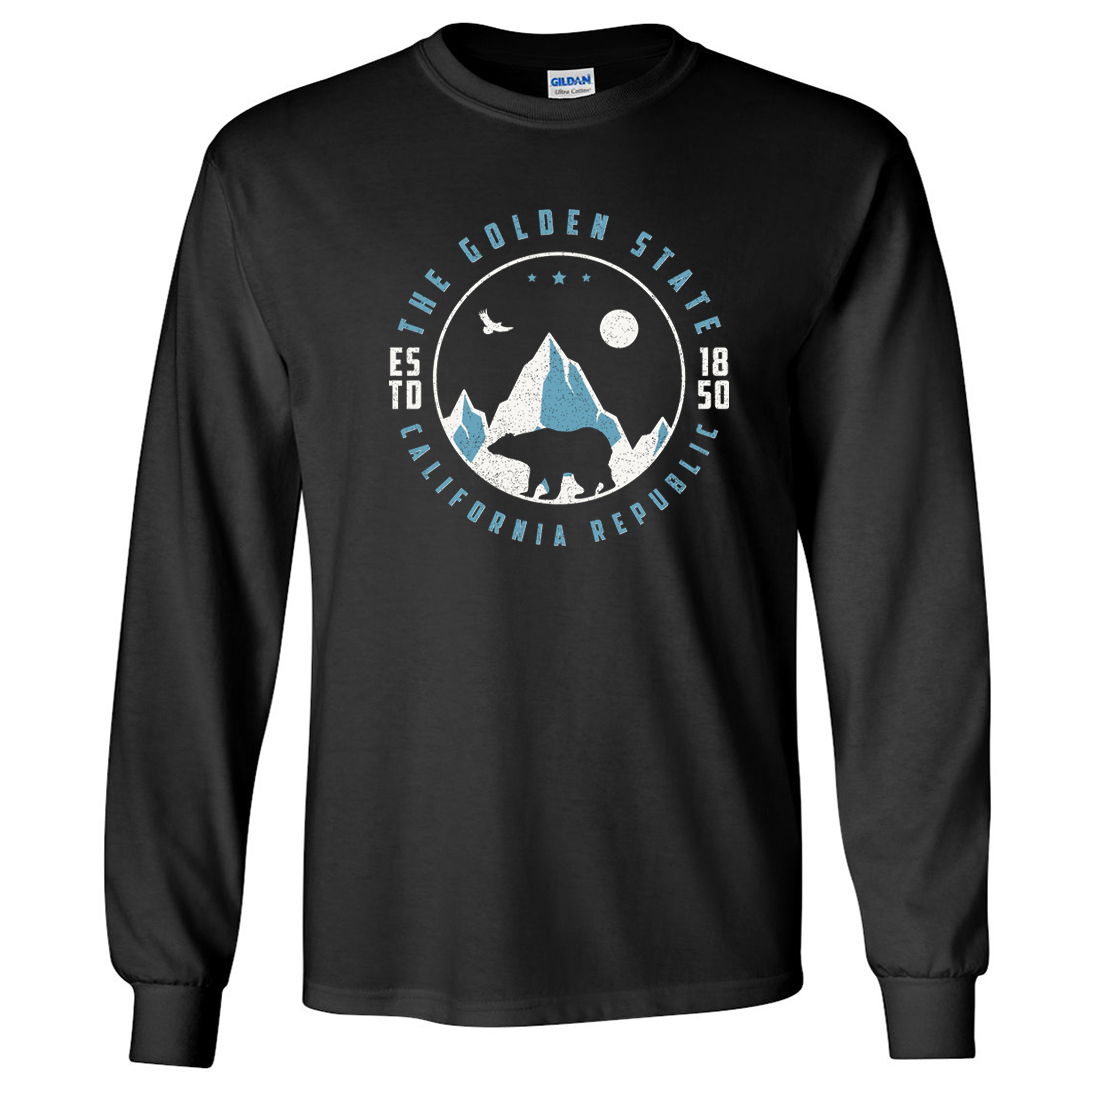 Snowy California Mountains Long Sleeve Shirt